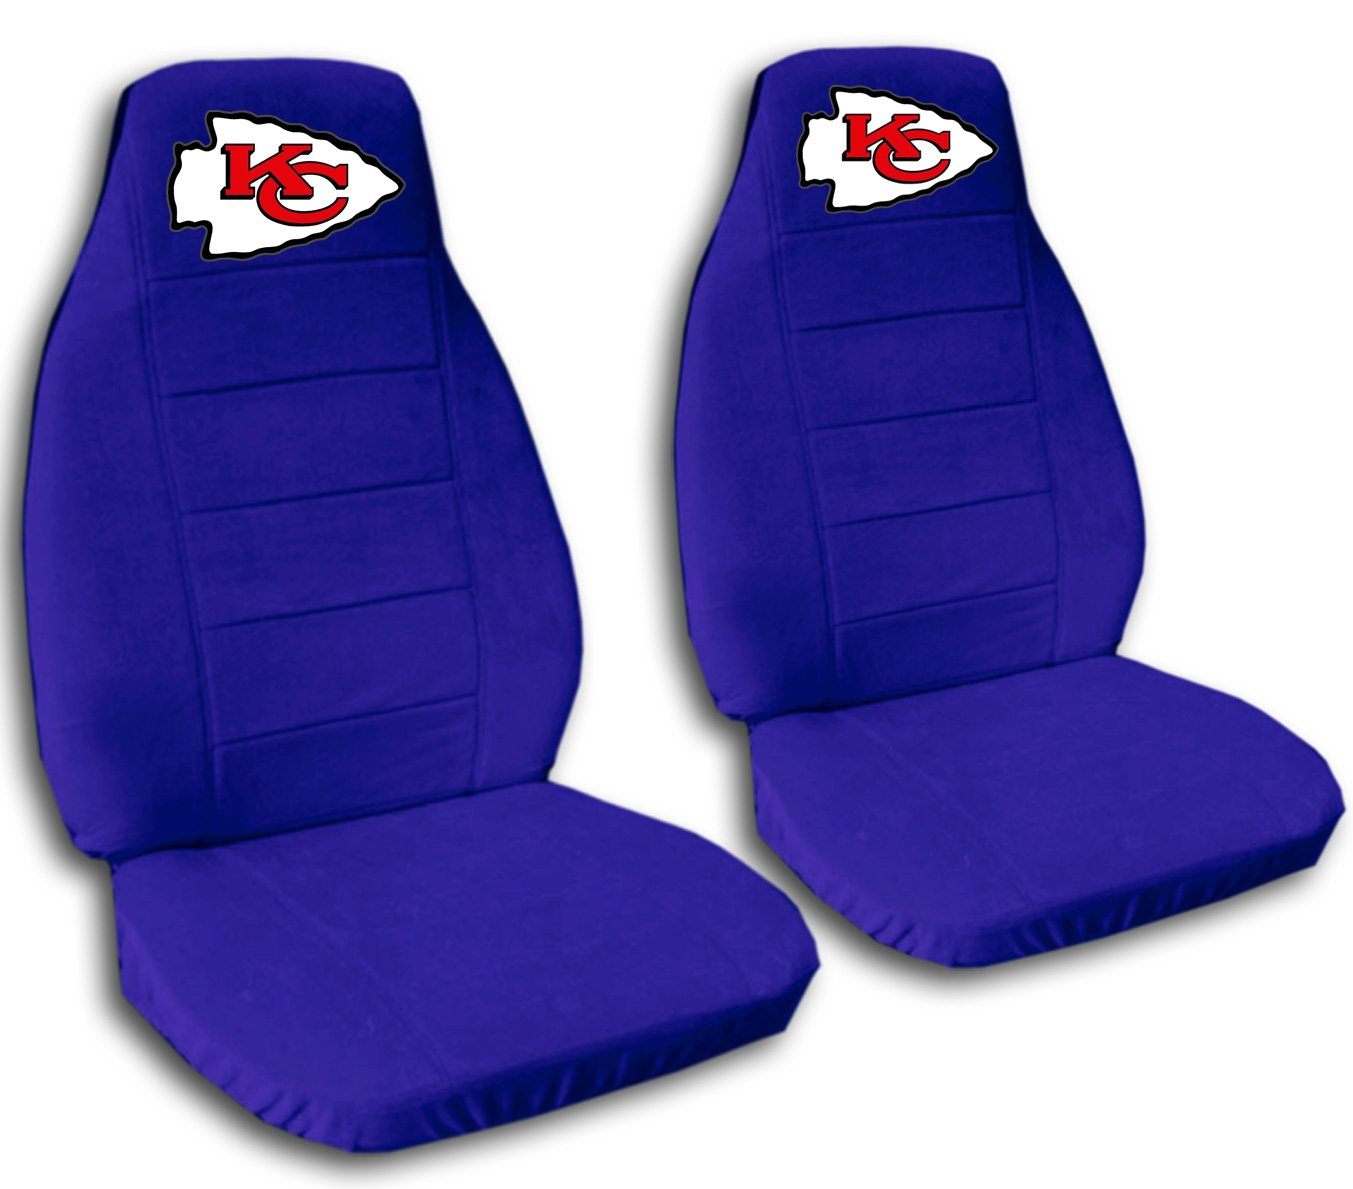 2 Dark Blue Kansas City seat covers for a 2007 to 2012 Chevrolet Silverado. Side airbag friendly.